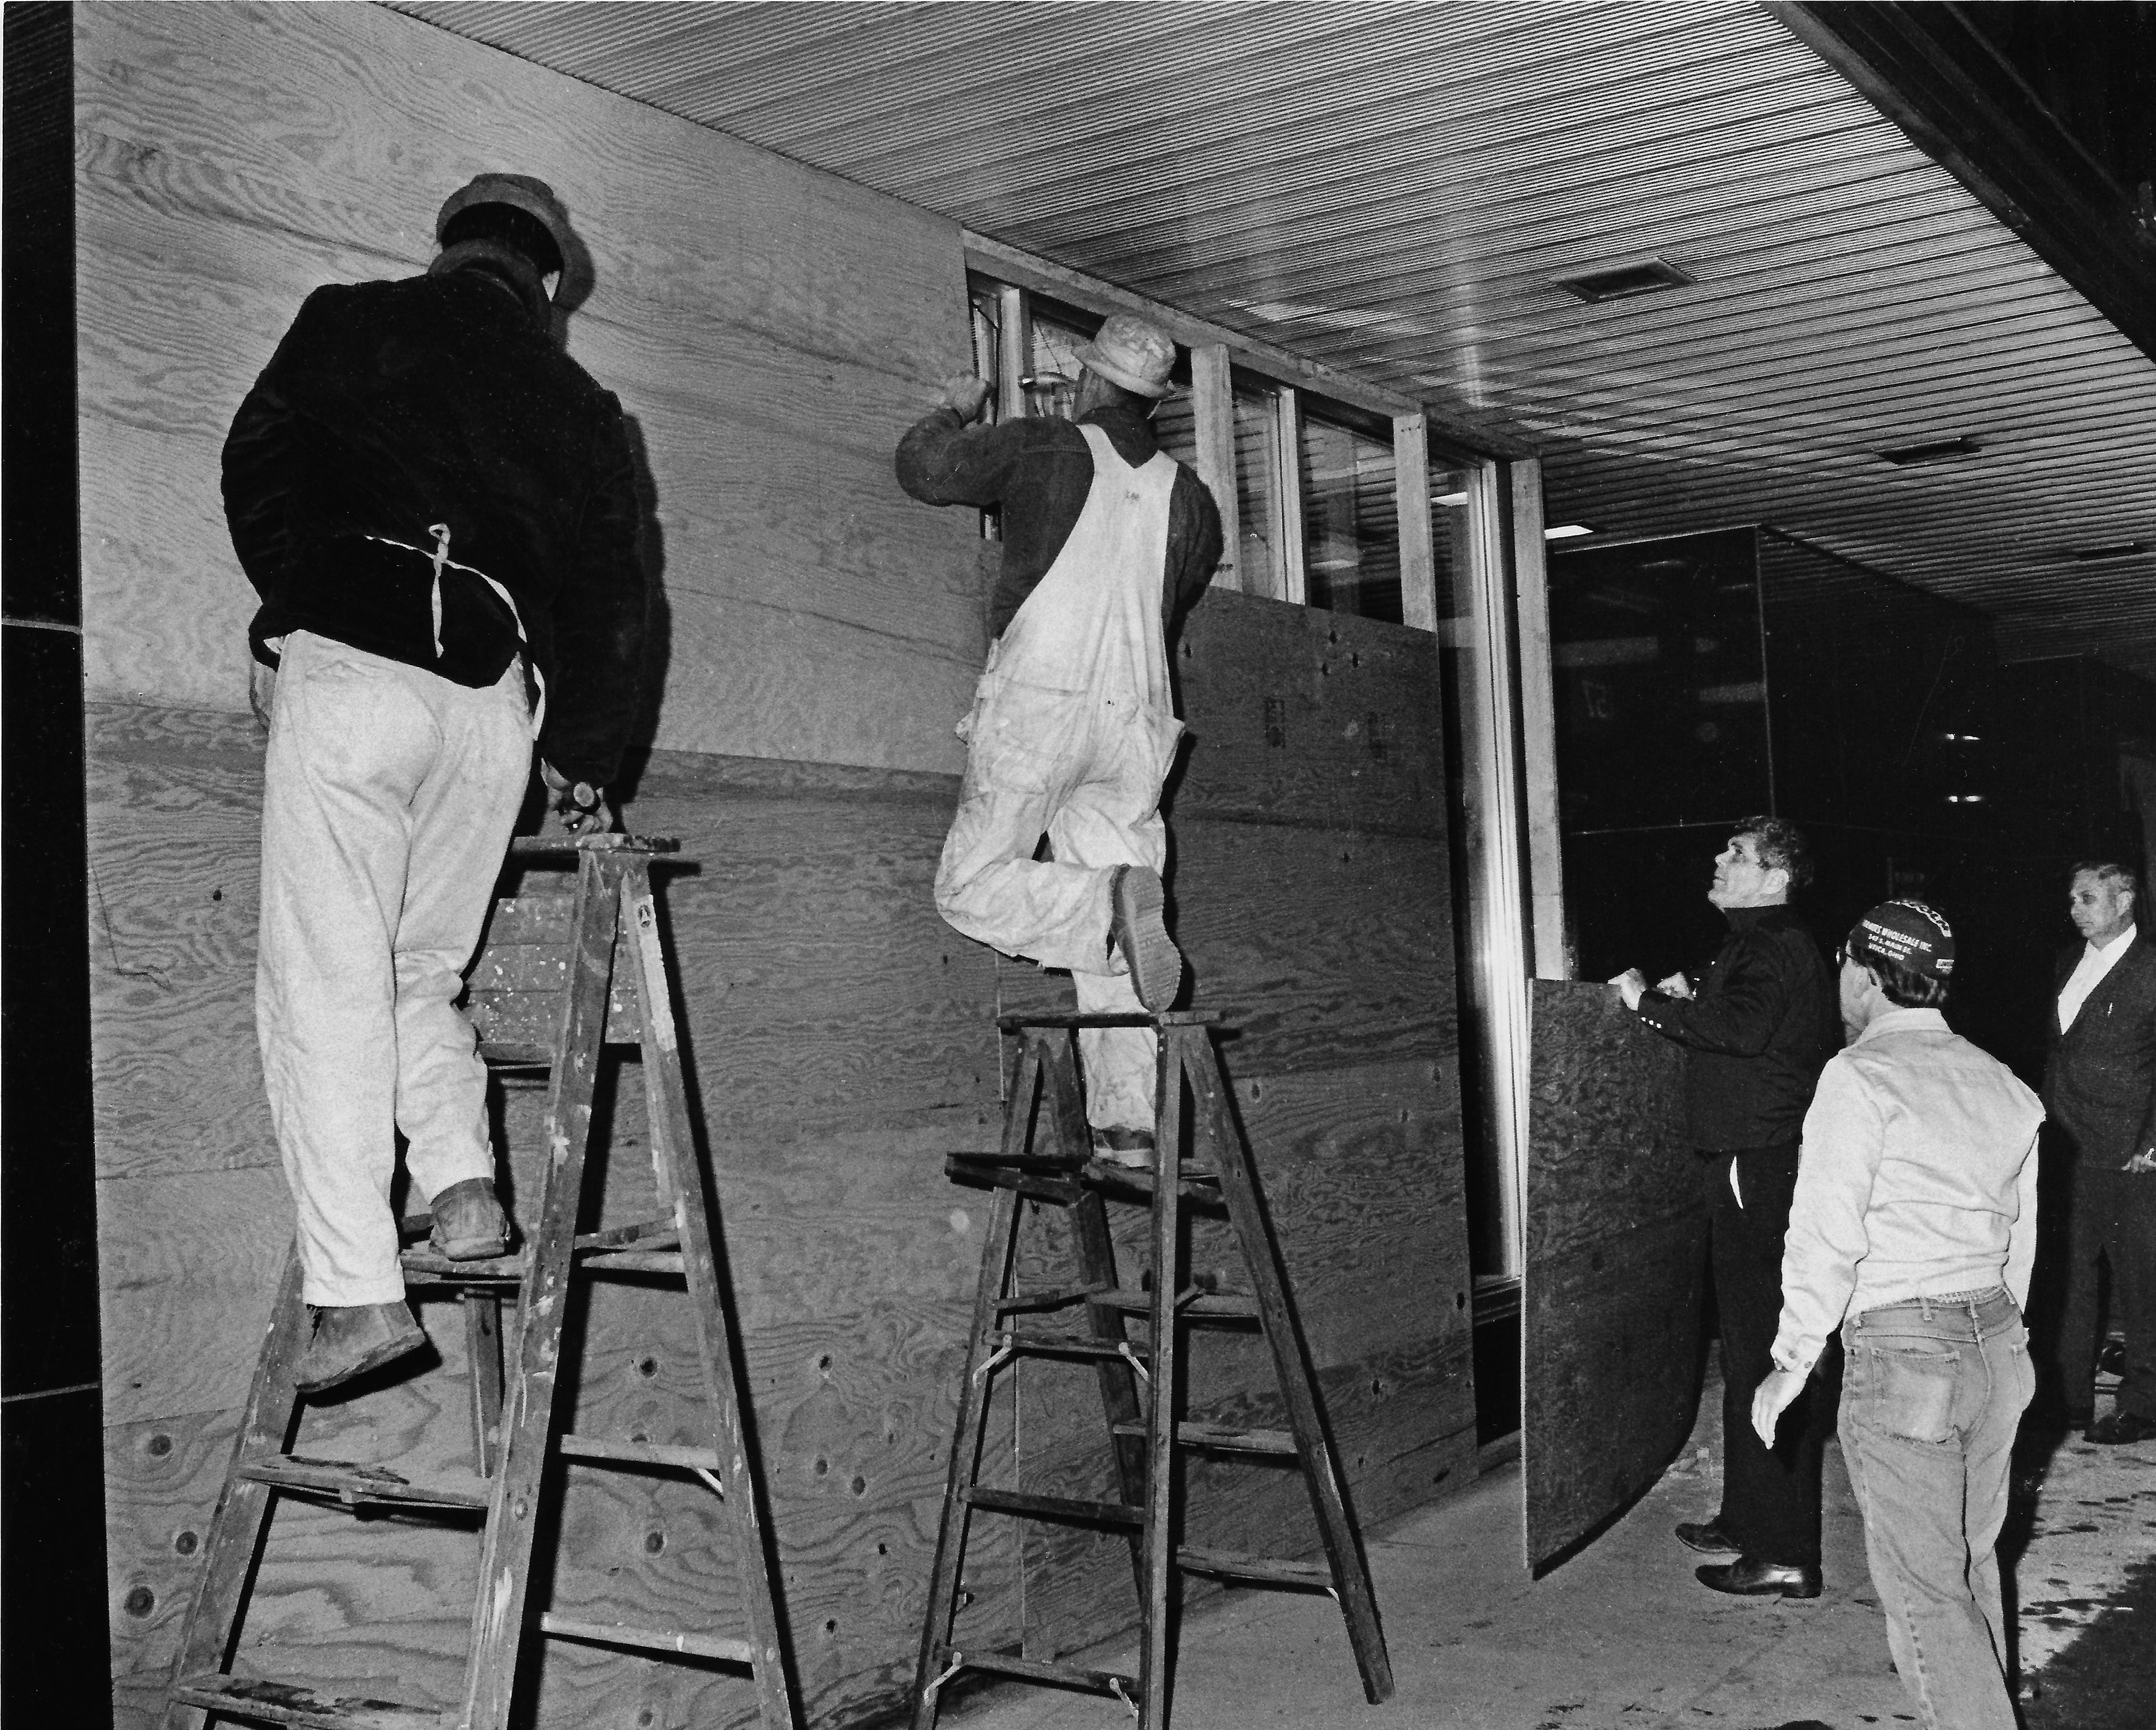 Workers board up broken windows on the First Federal Savings Bank building after vandals damaged a number of buildings in downtown Kent Friday night, May 1, 1970.